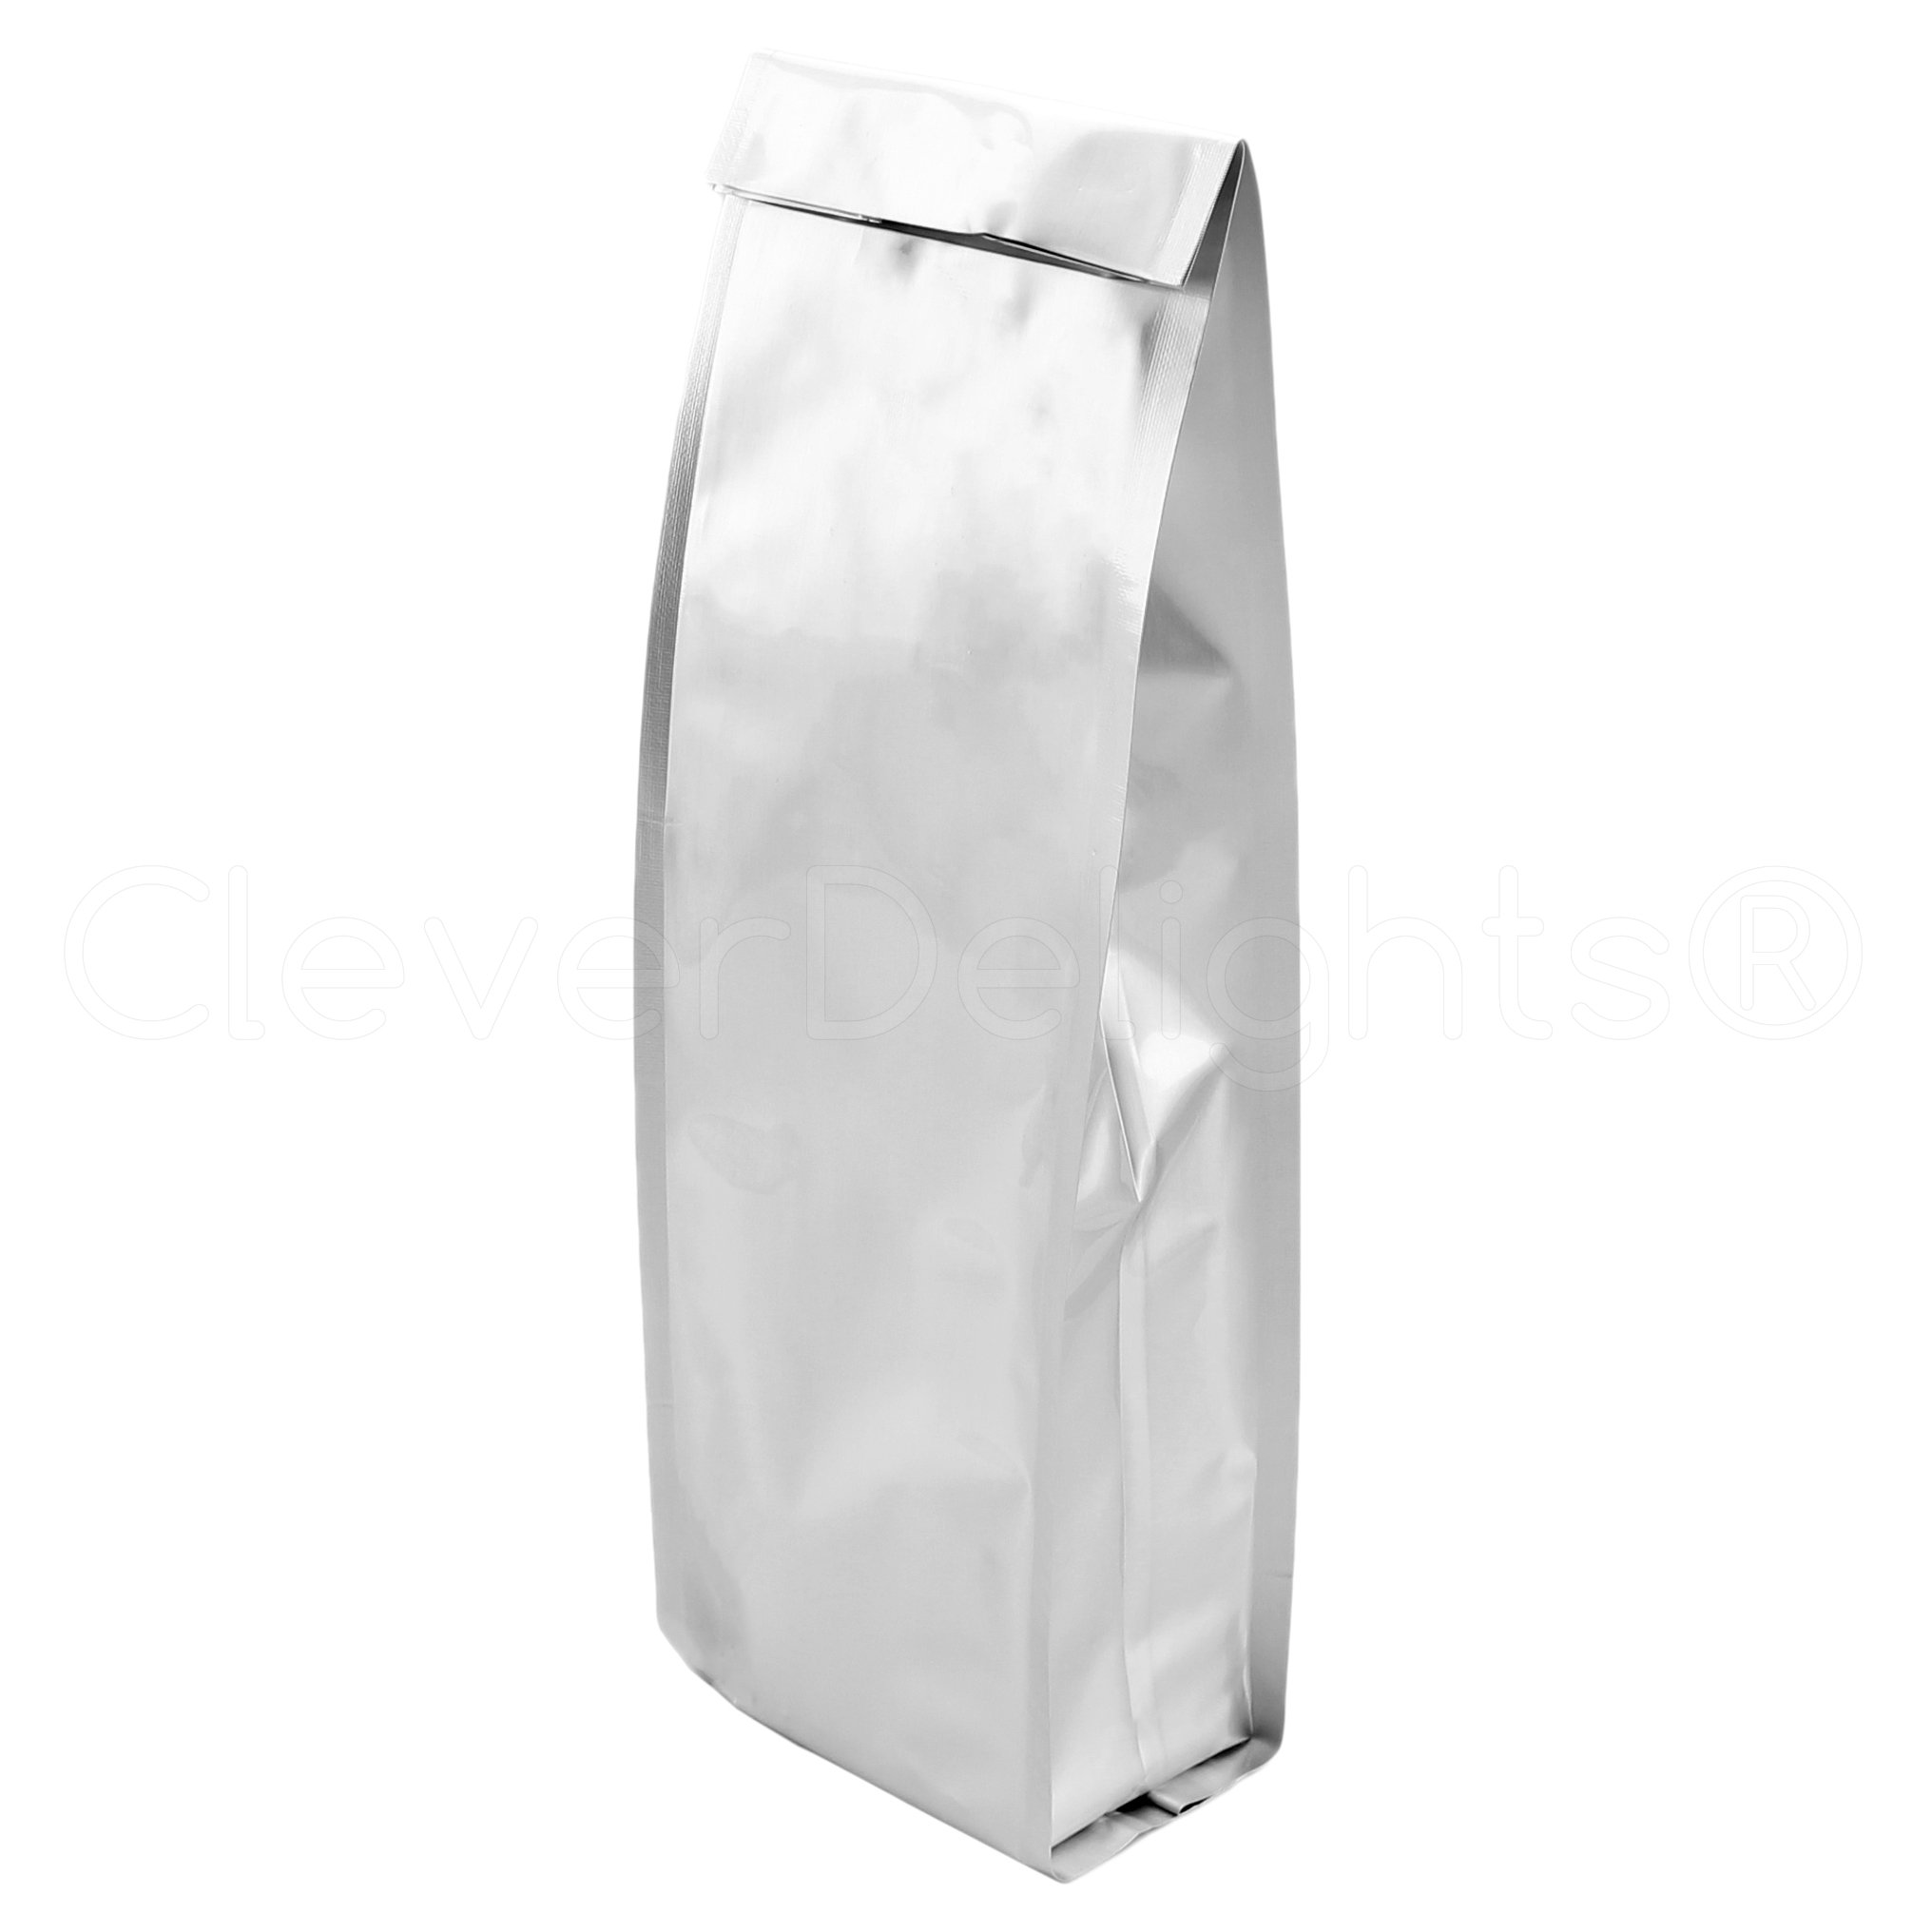 100 Pack - CleverDelights Silver Coffee Bags - 1 Pound Bag (16oz) - Heat Sealable Retail Packaging